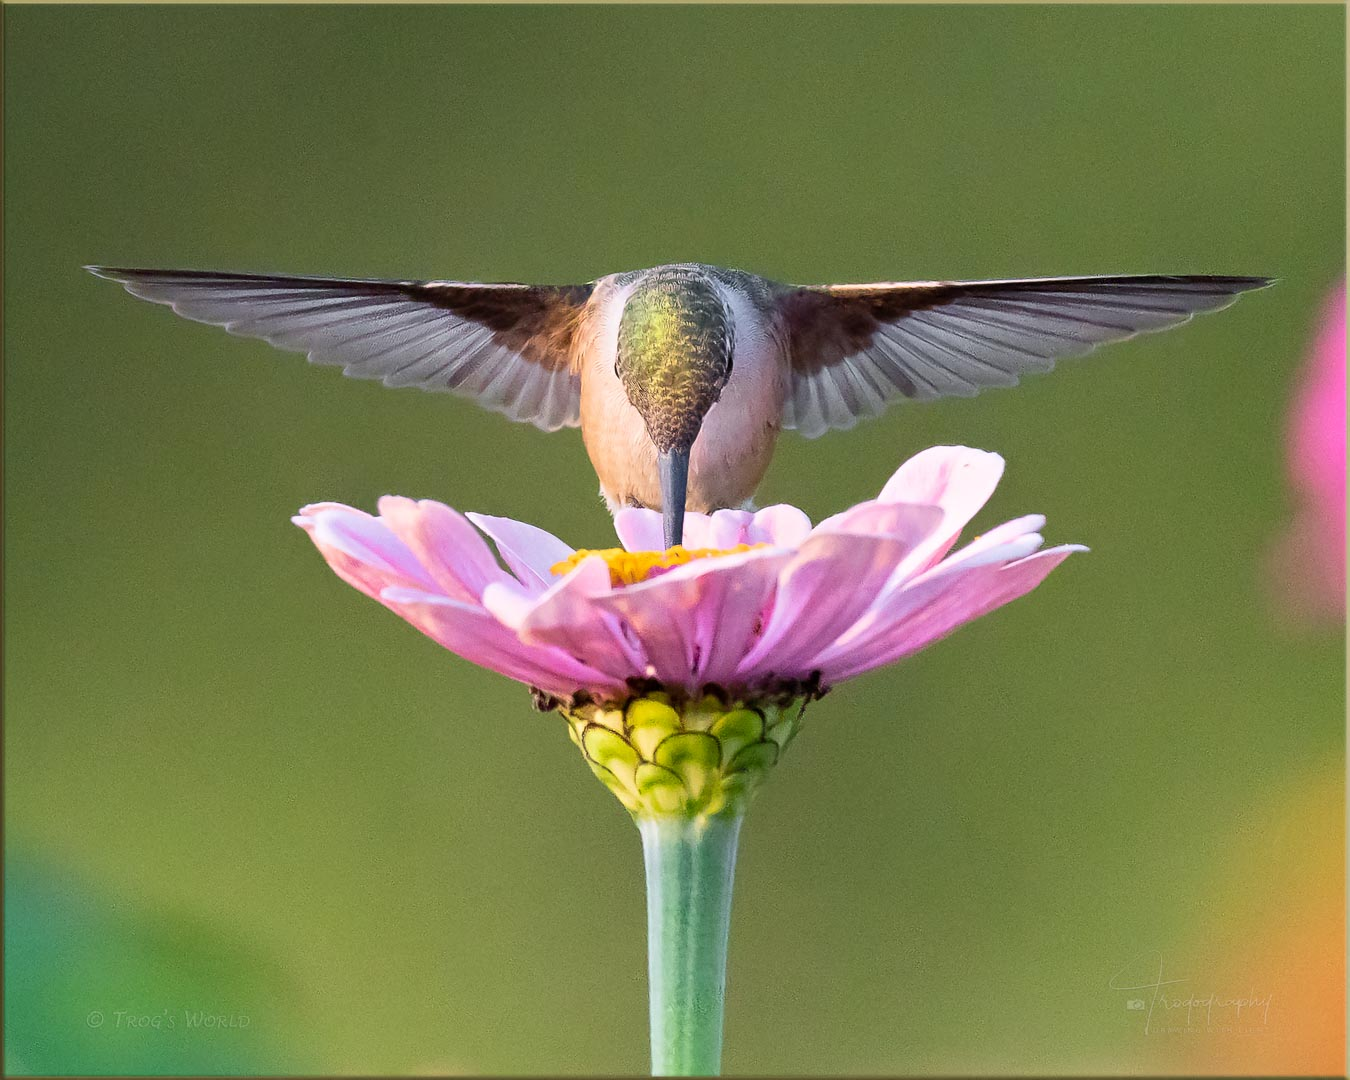 Ruby-throated Hummingbird poking at a flower